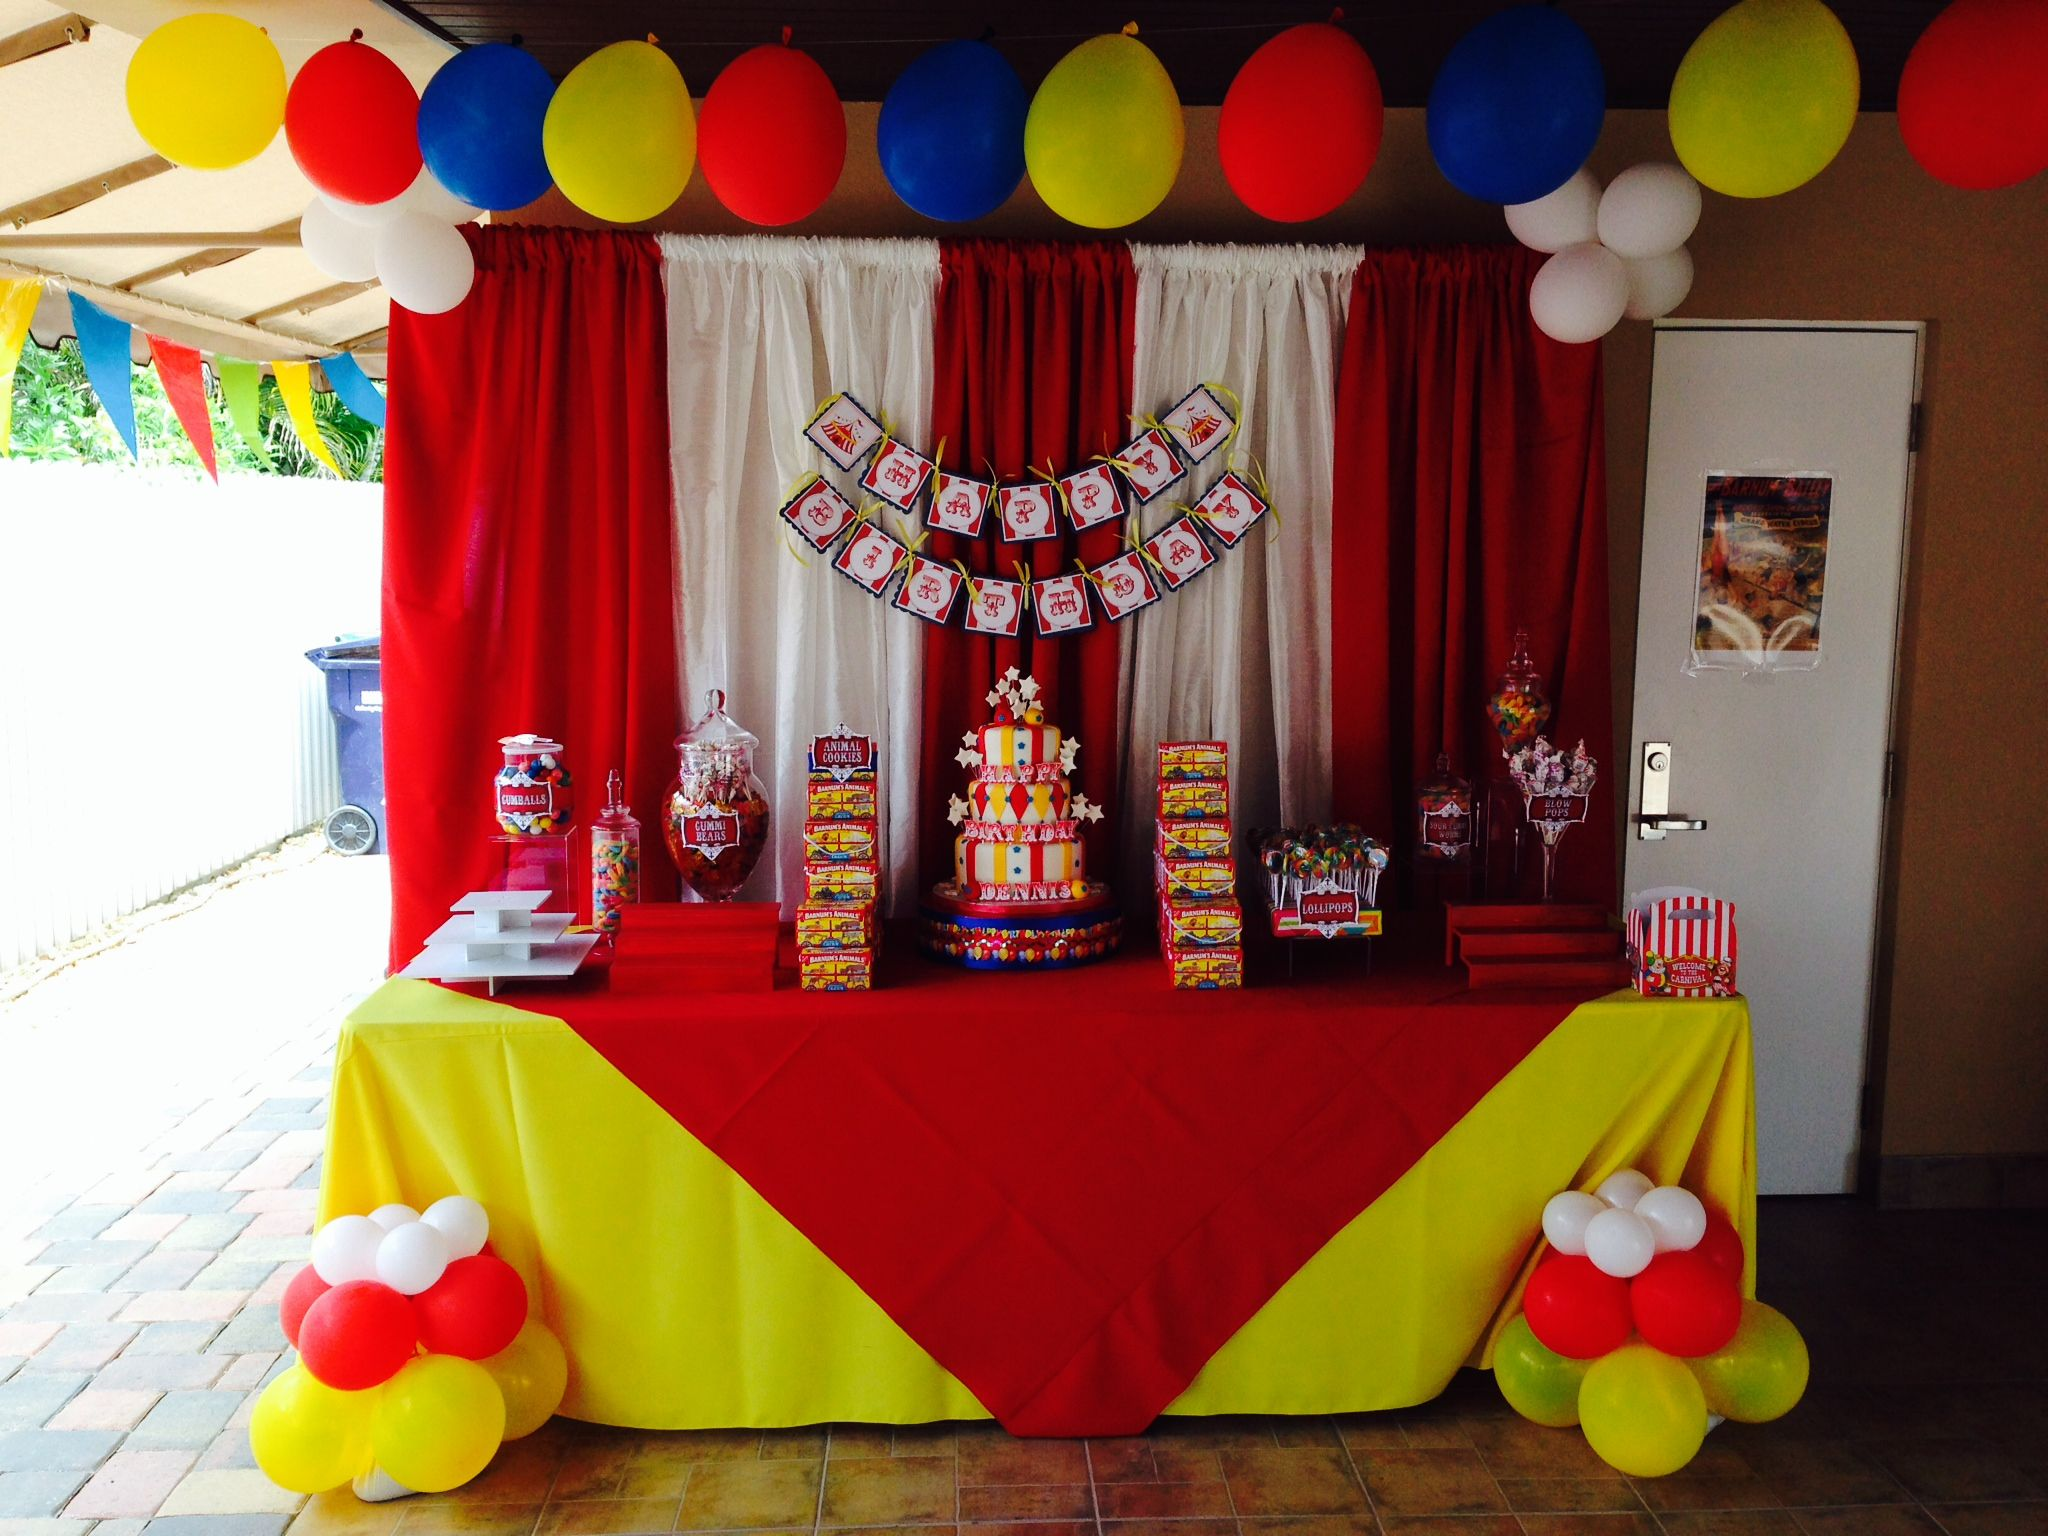 Awesome Circus Theme Party Decoration Ideas Part - 13: Circus Theme Kids Party Decoration. Cake Table Ideas For Decoration With  Back Wall Draping And